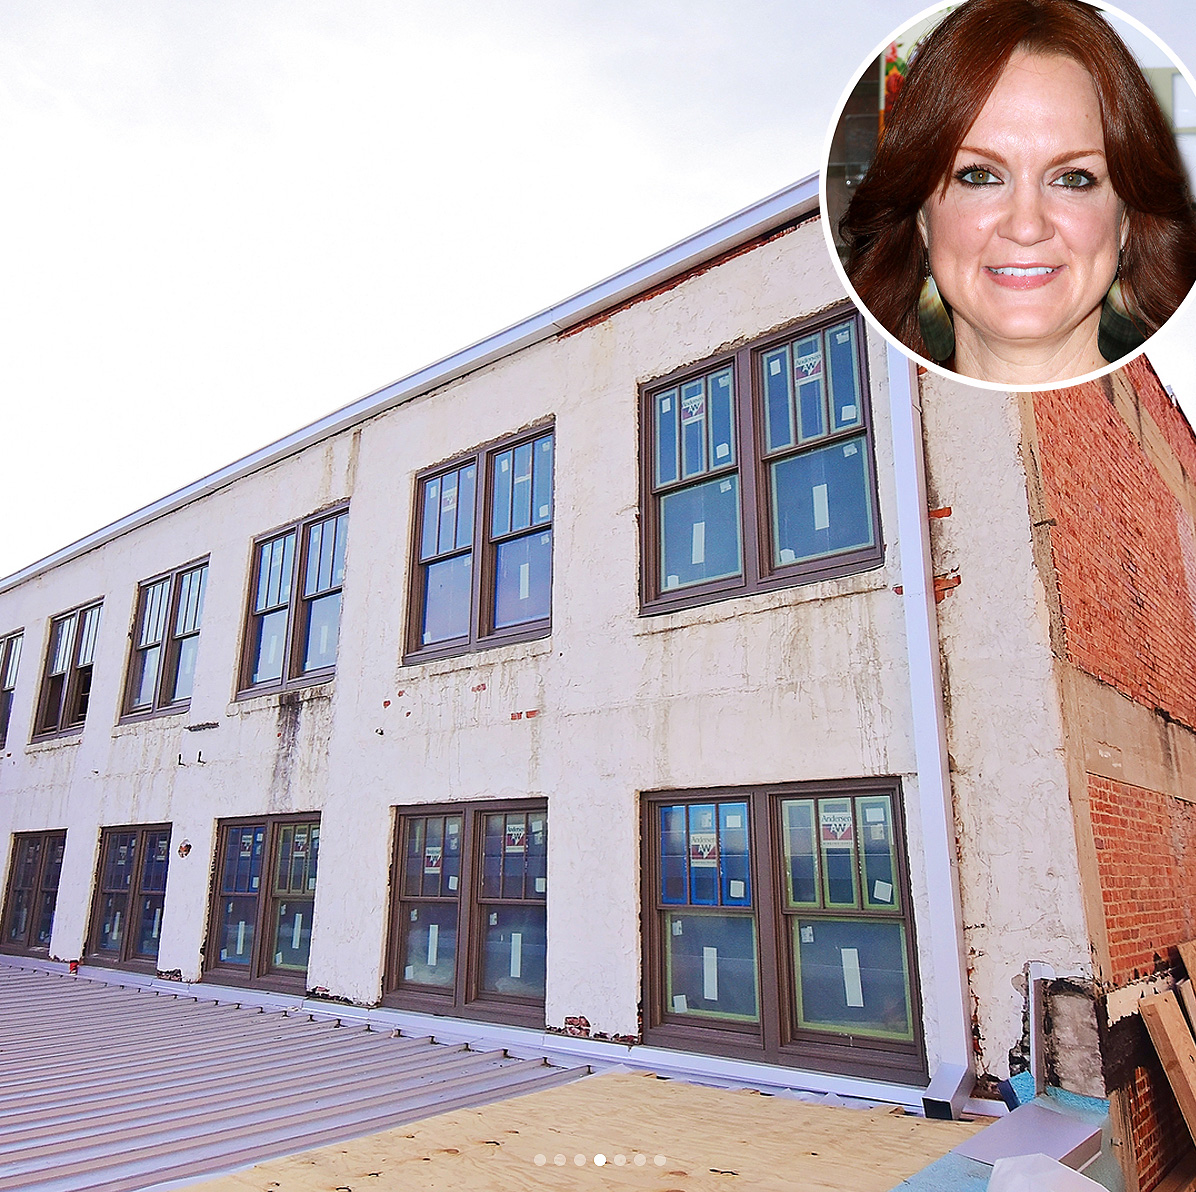 Pioneer Woman Ree Drummond Shares Progress Photos of New Hotel: 'It's All Gonna Be Fine'